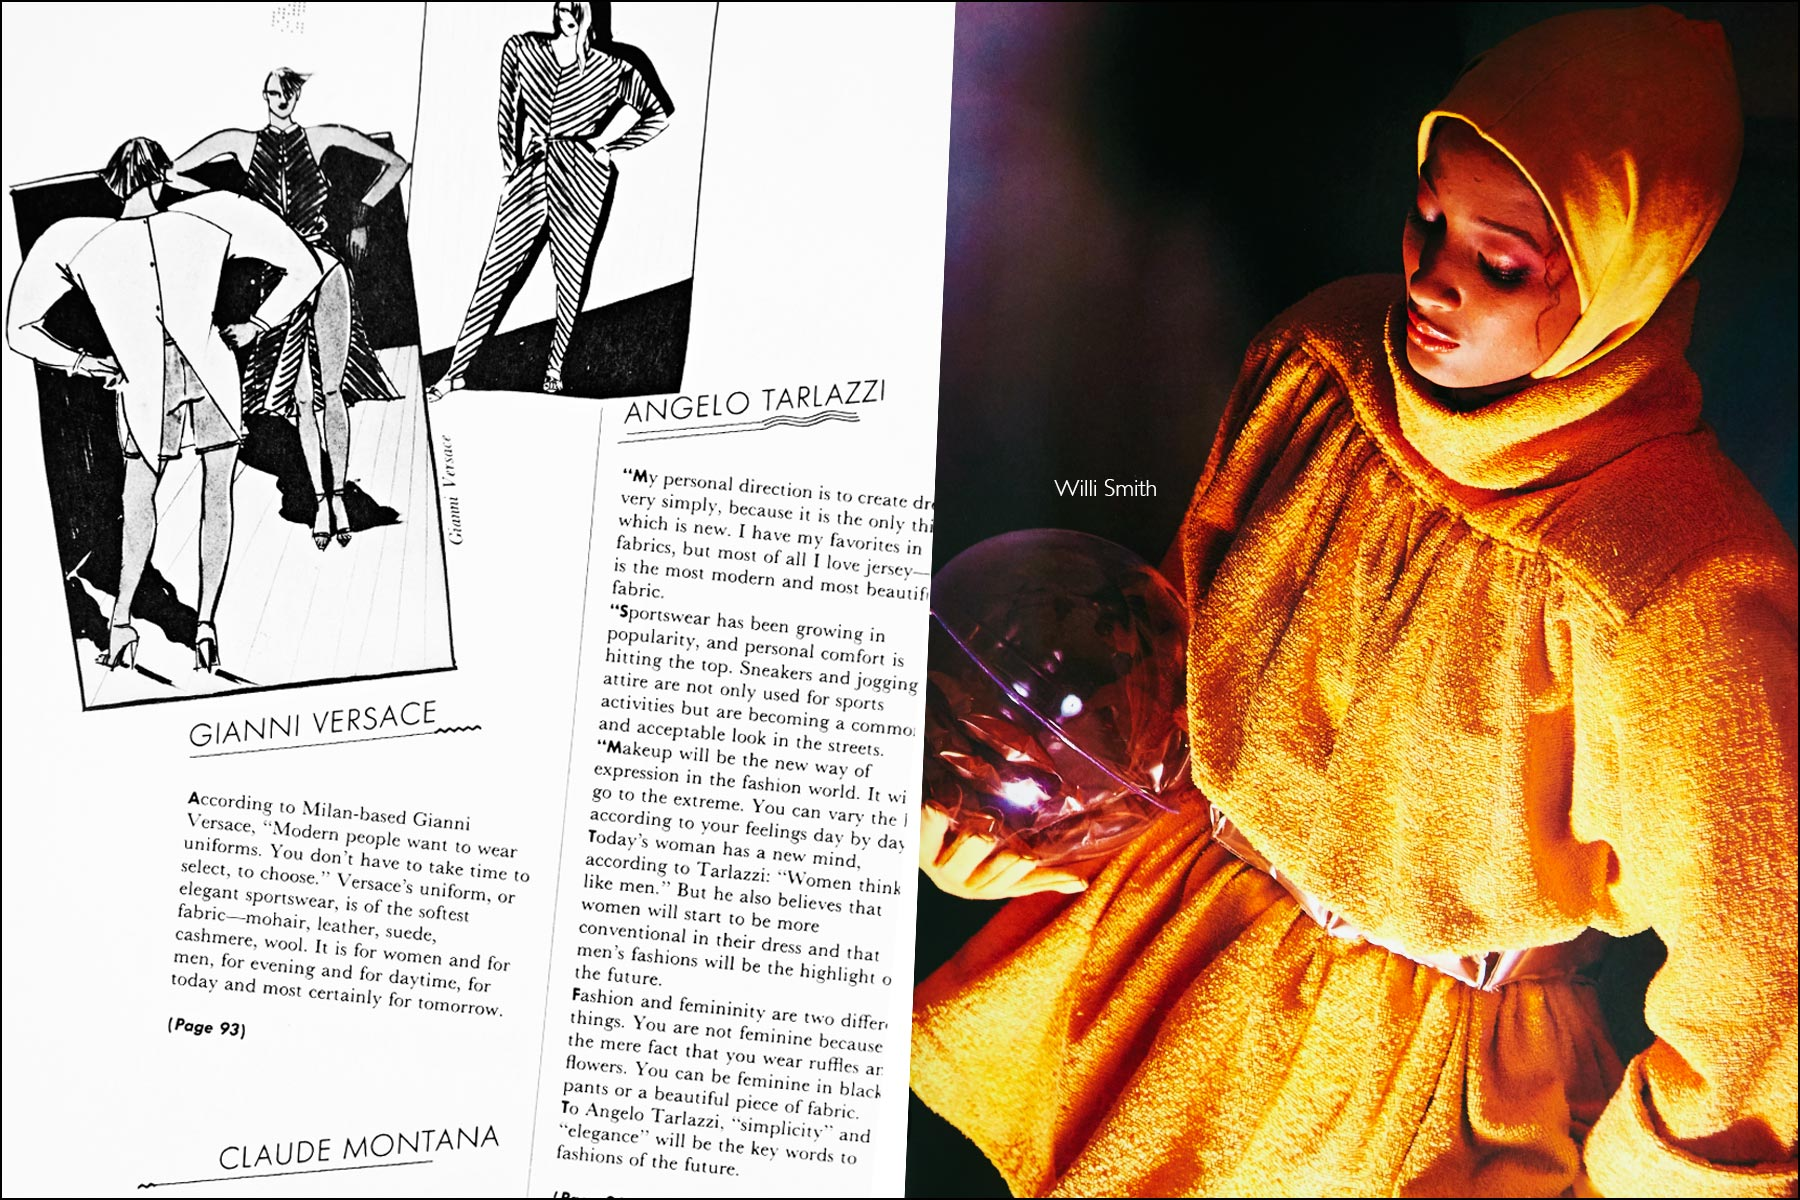 A fashion sketch by Gianni Versace and a fashion photo featuring a design by Willi Smith, featured in the book Fashion: 2001 by Lucille Khornak. Ponyboy magazine NY.